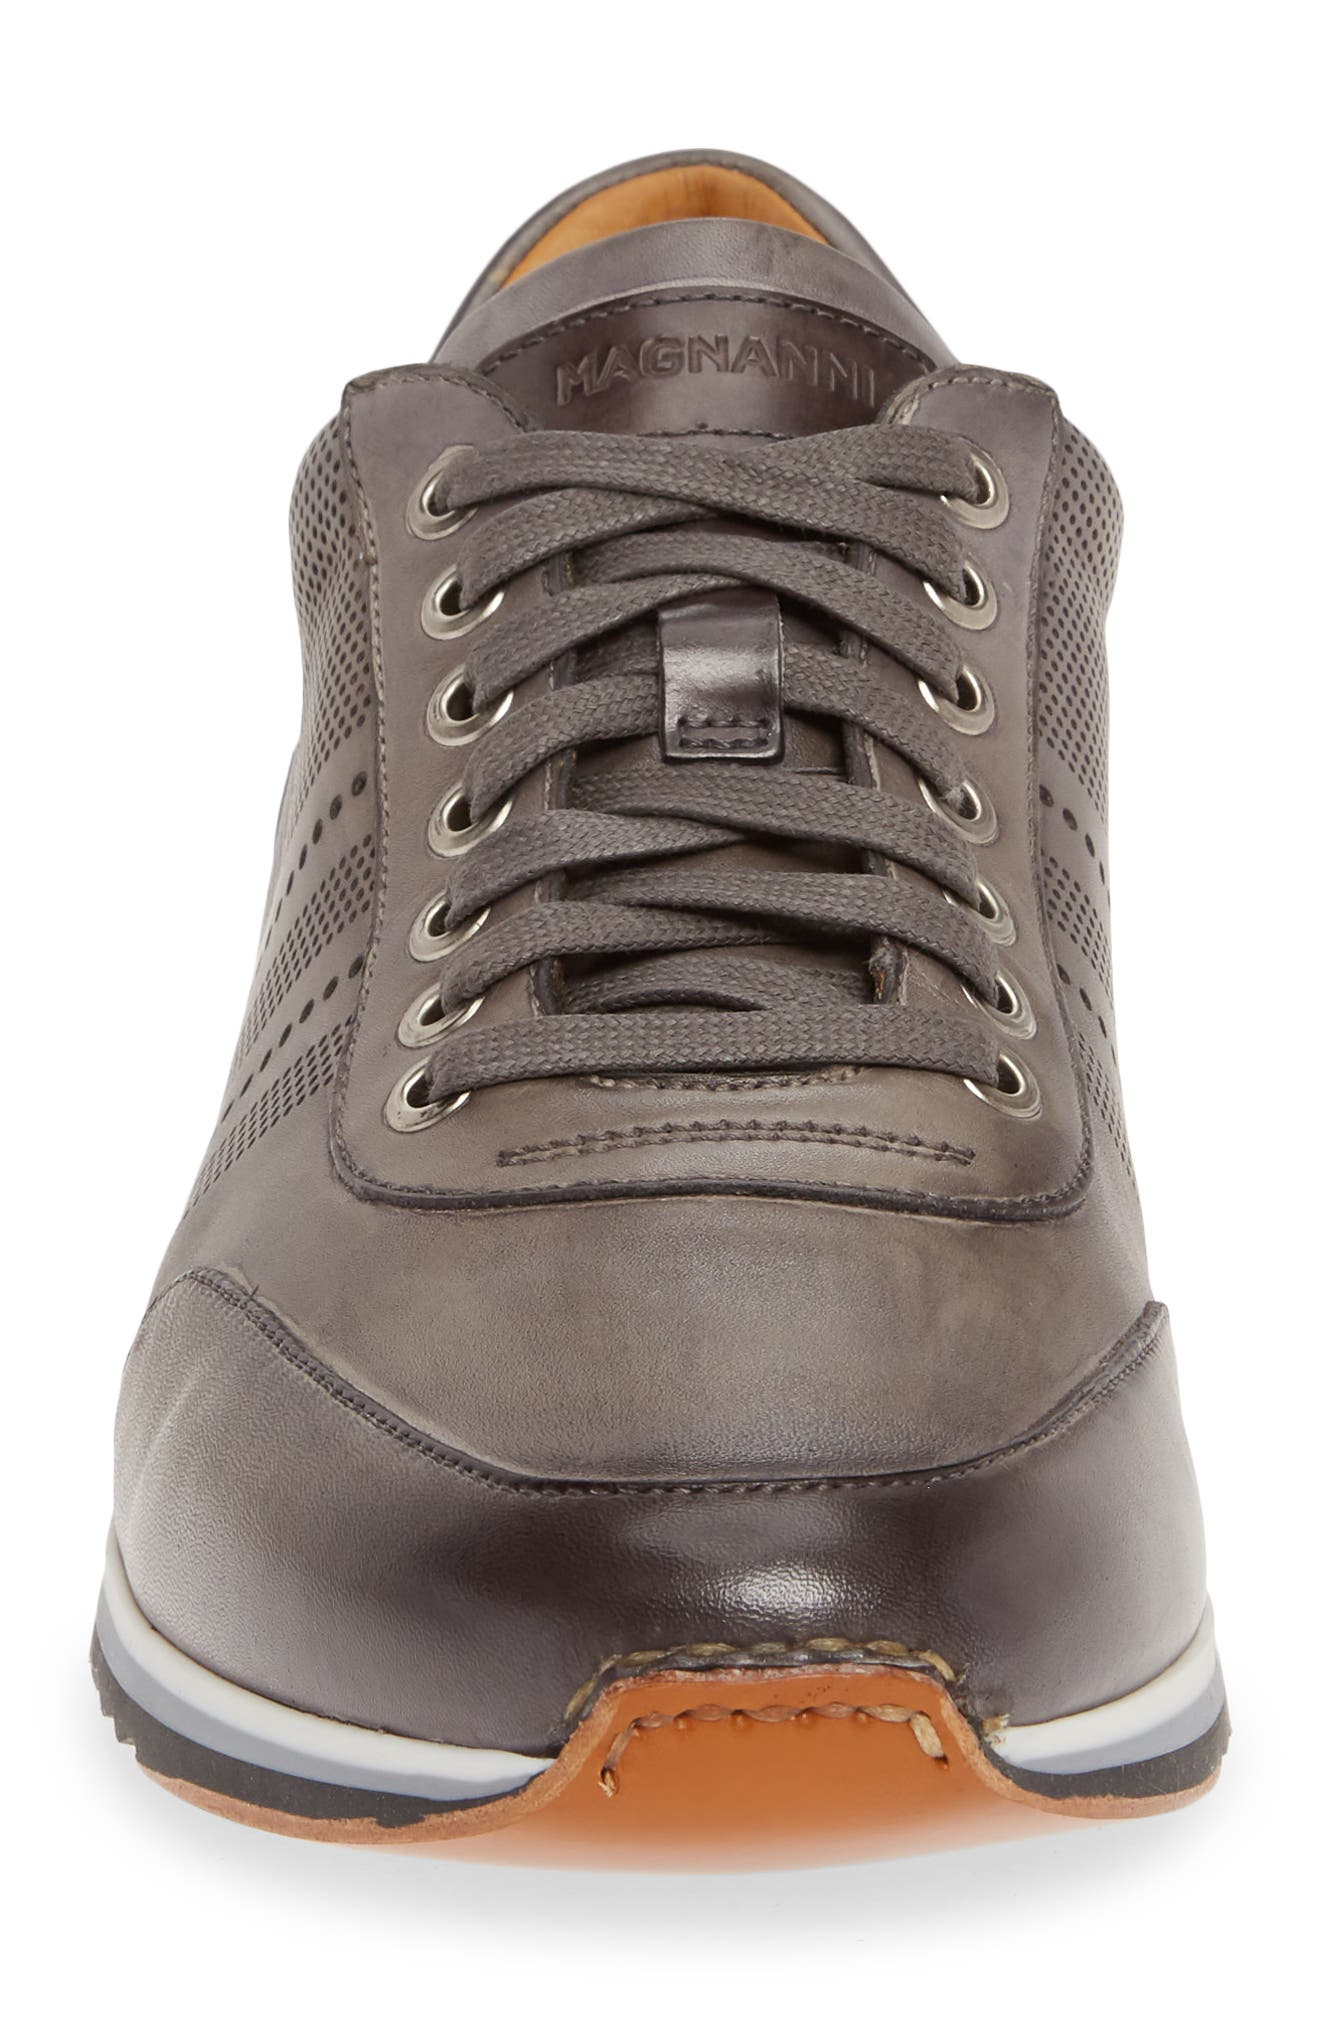 MAGNANNI, Merino Sneaker, Alternate thumbnail 4, color, GREY LEATHER